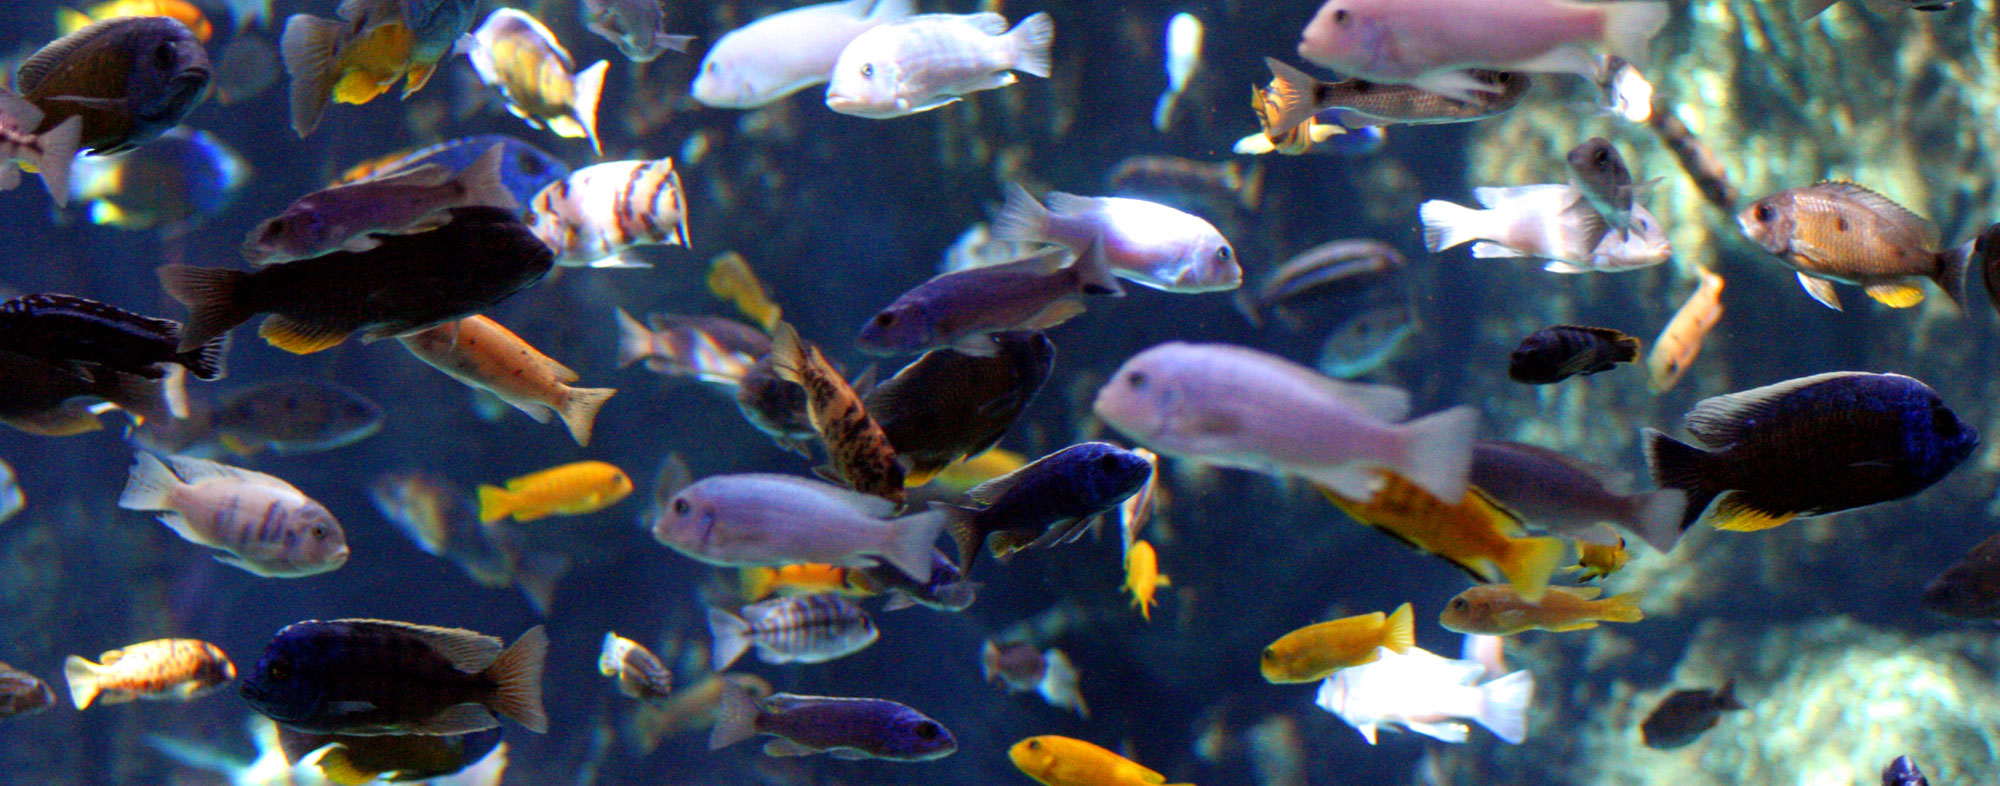 Assemble an eclectic and colorful community of fish for your tank